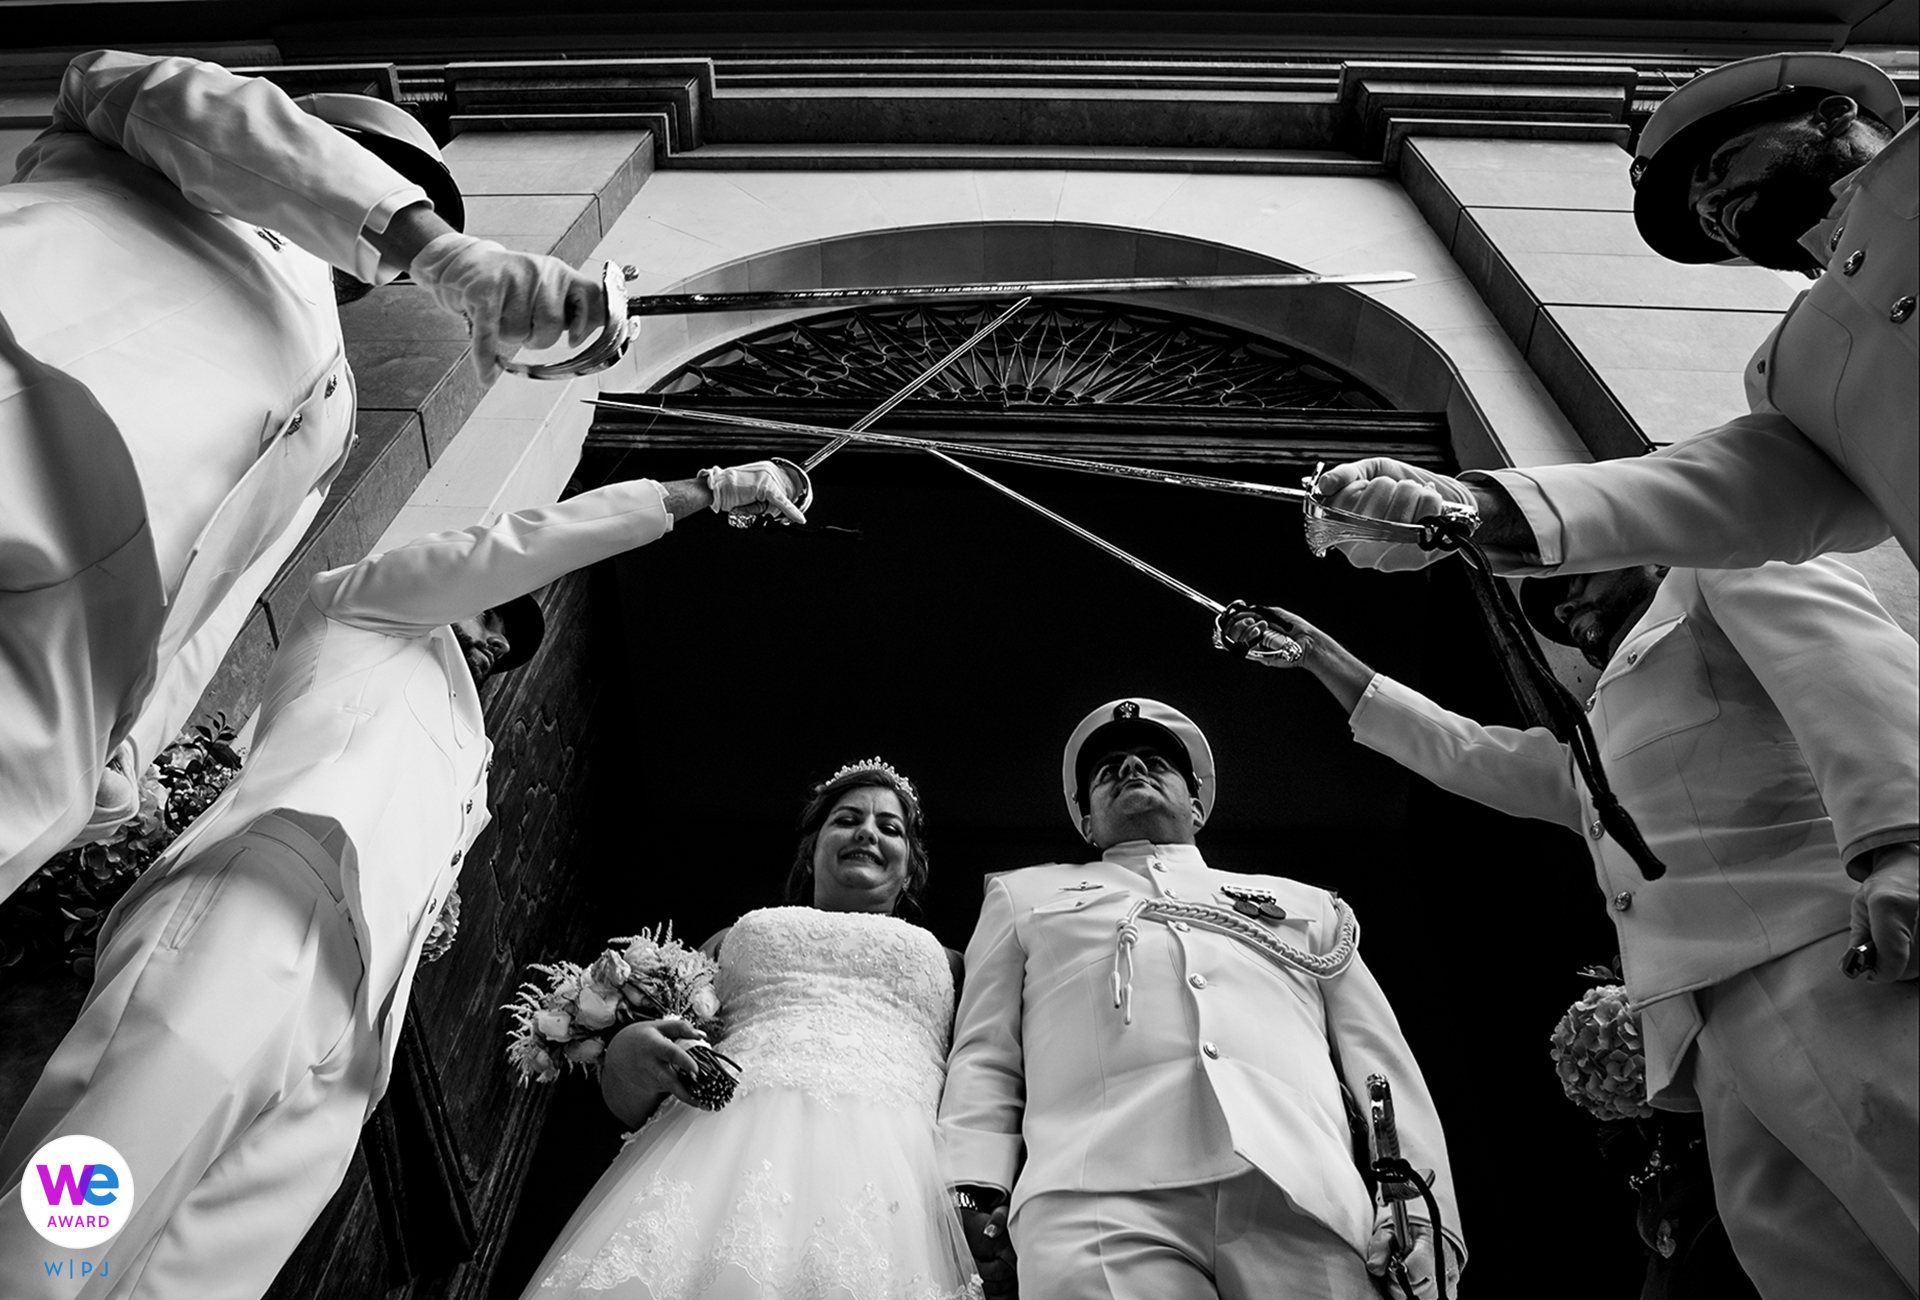 Aguilas, Spain Military Elopement Ceremony Photography | The couple makes a grand exit from the church under swords